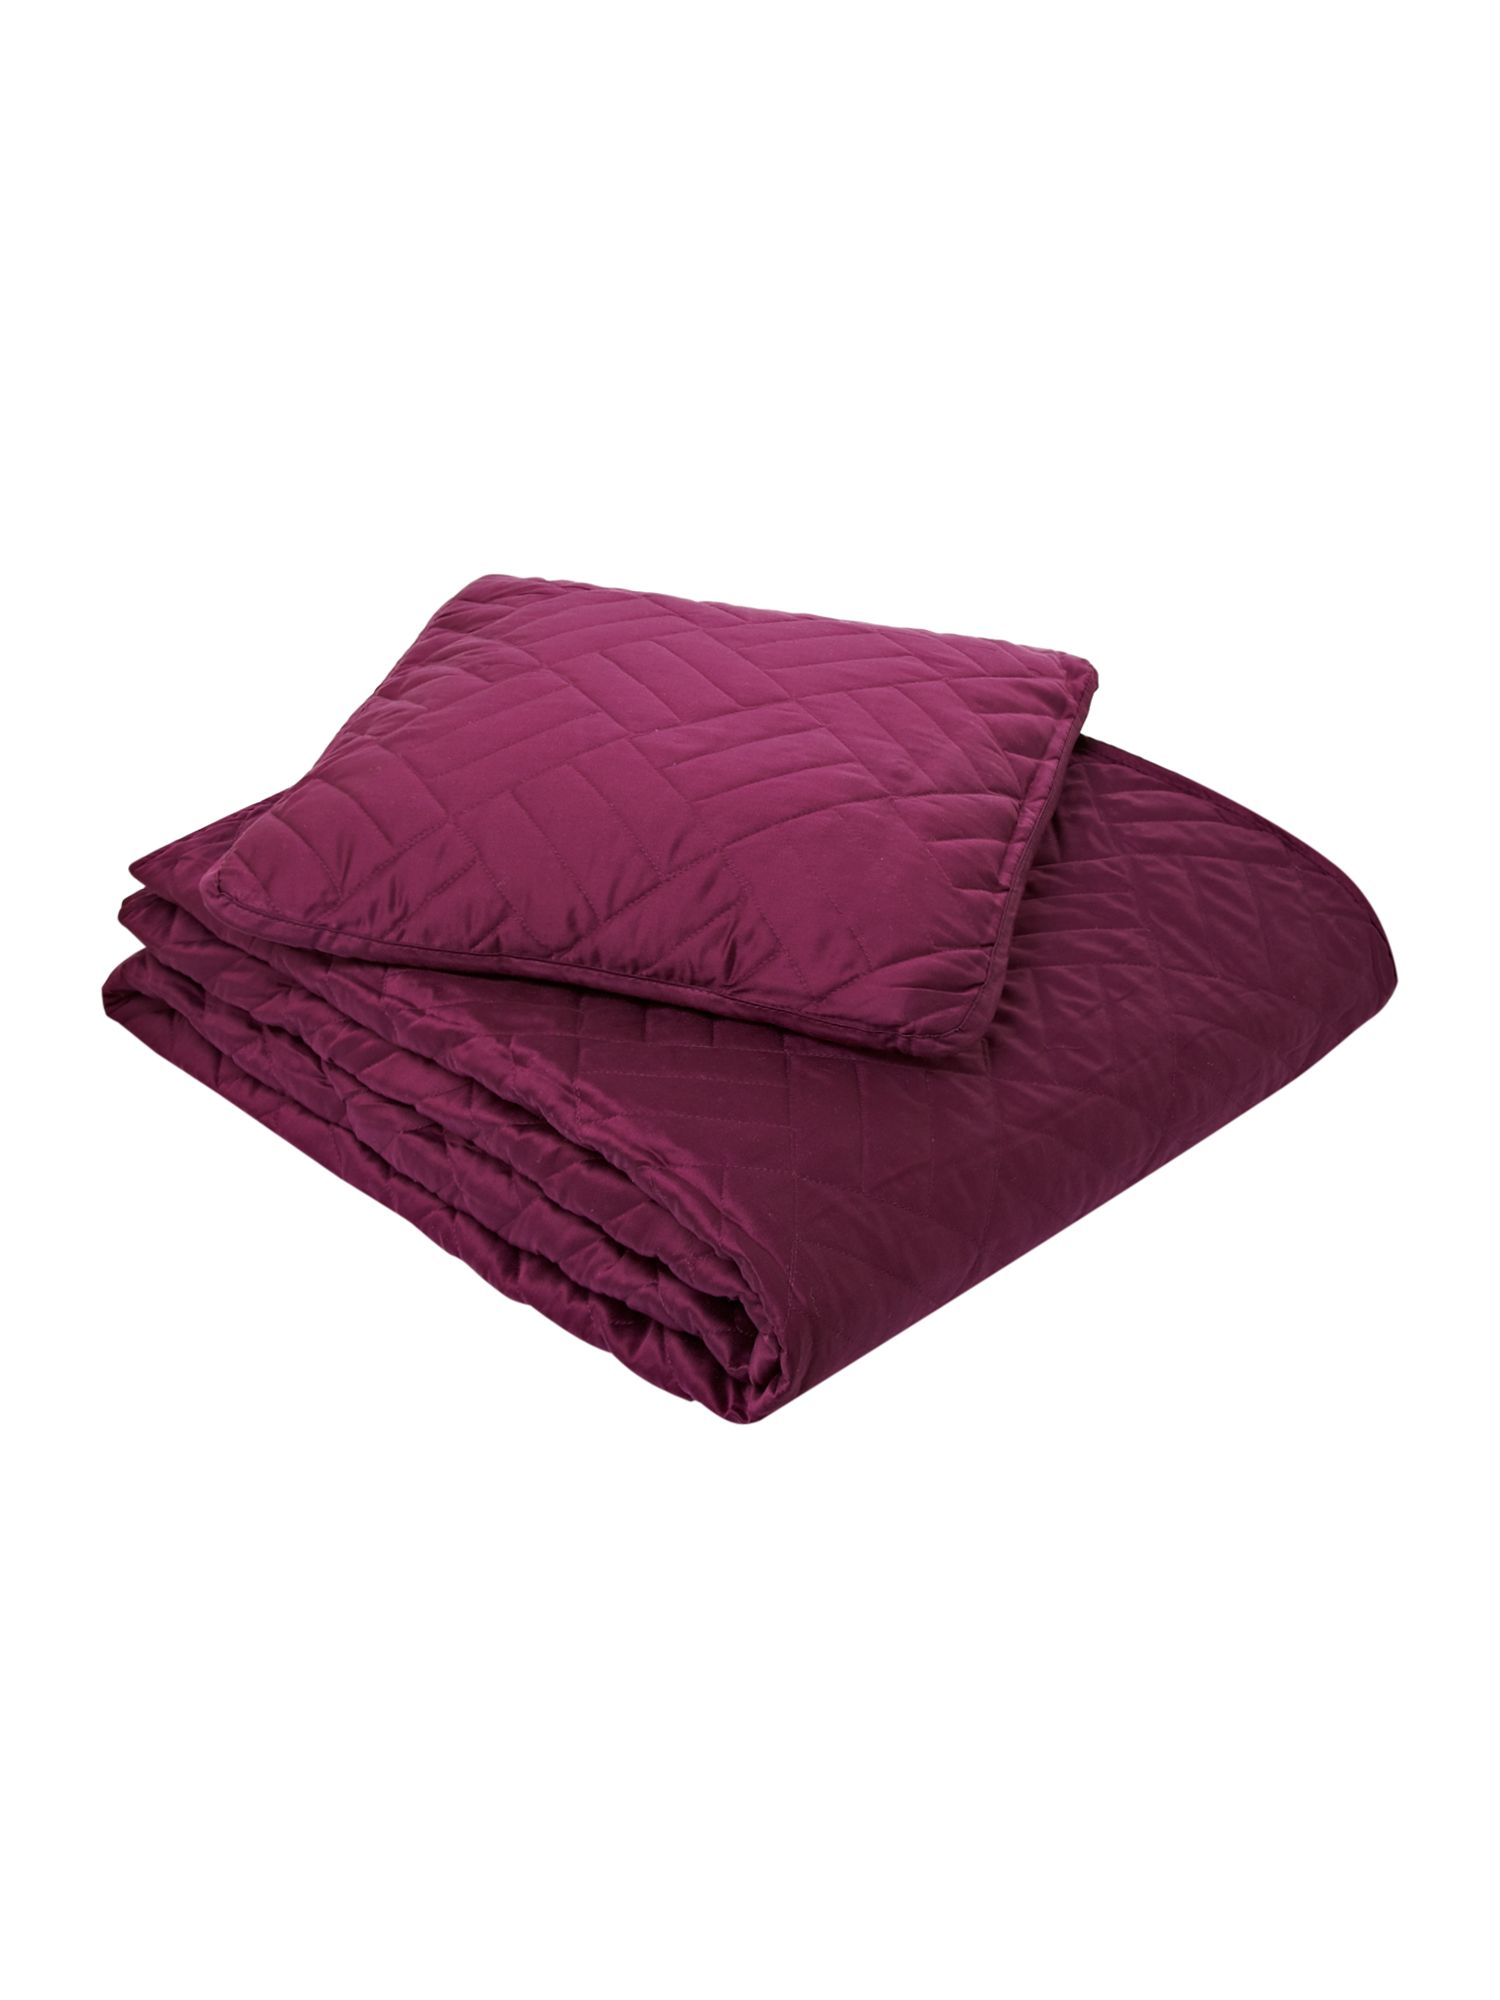 Quilted bedcover and cushion in plum